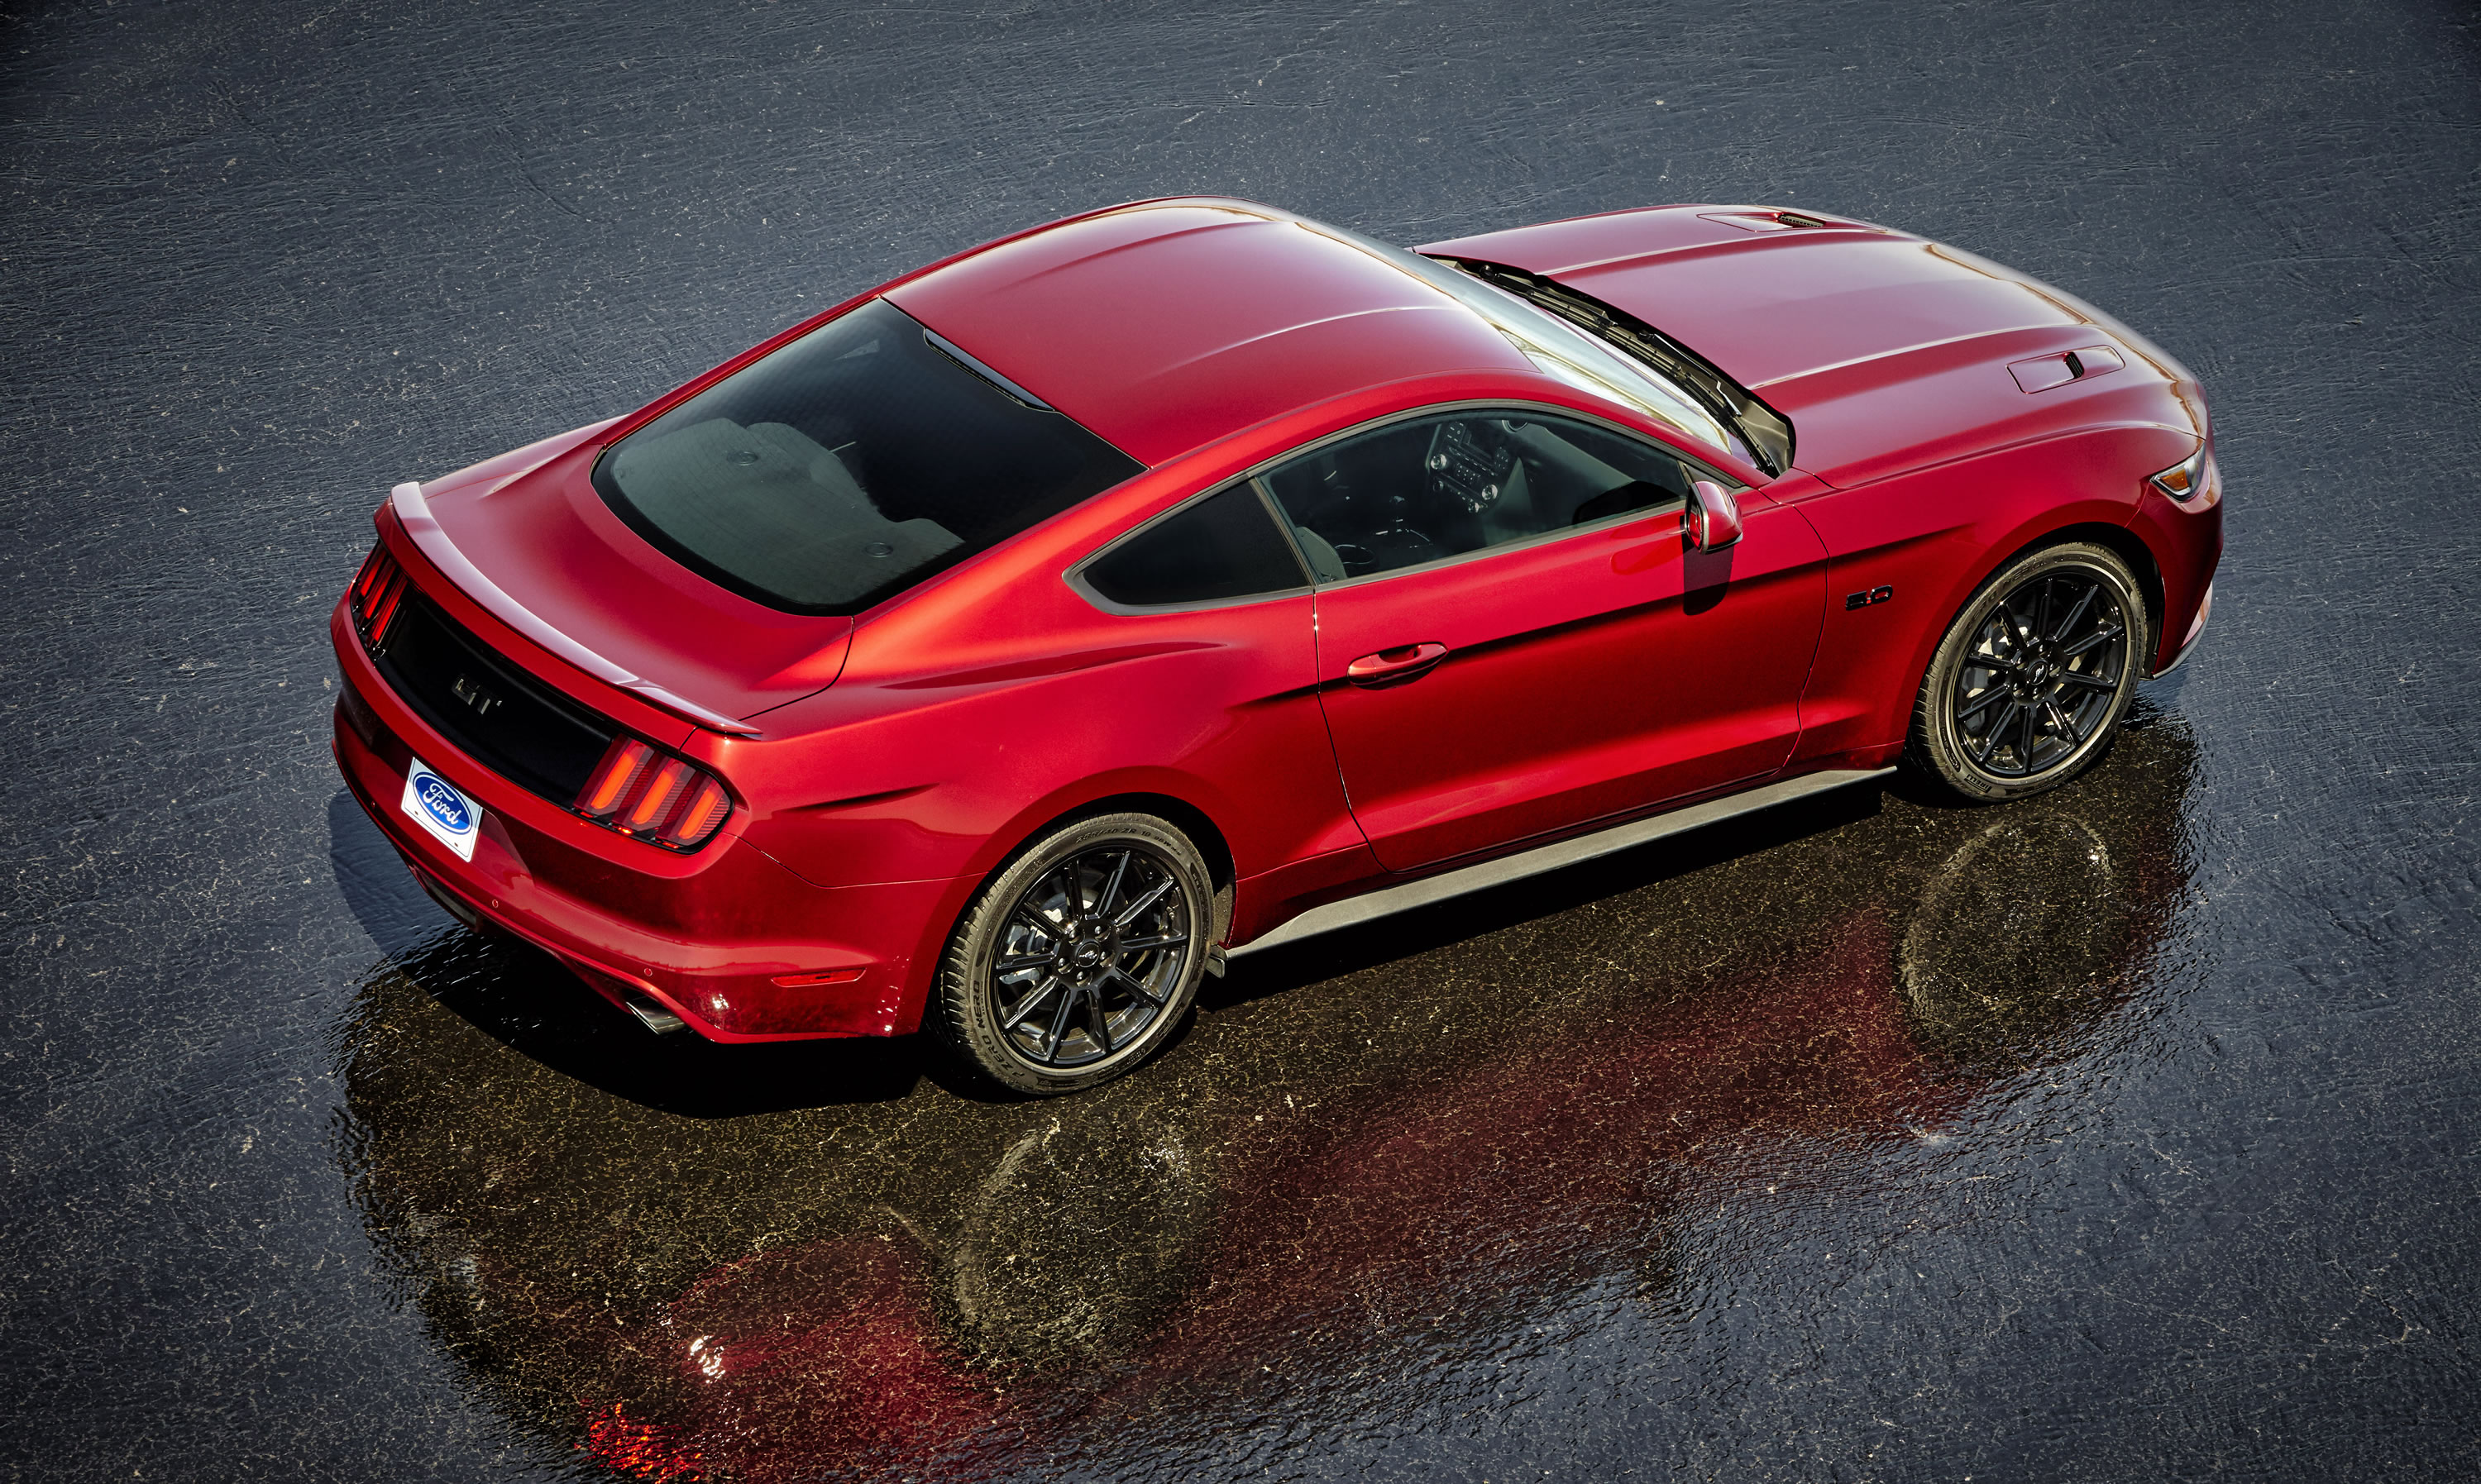 2016 ford mustang gt photos specs and review rs. Black Bedroom Furniture Sets. Home Design Ideas